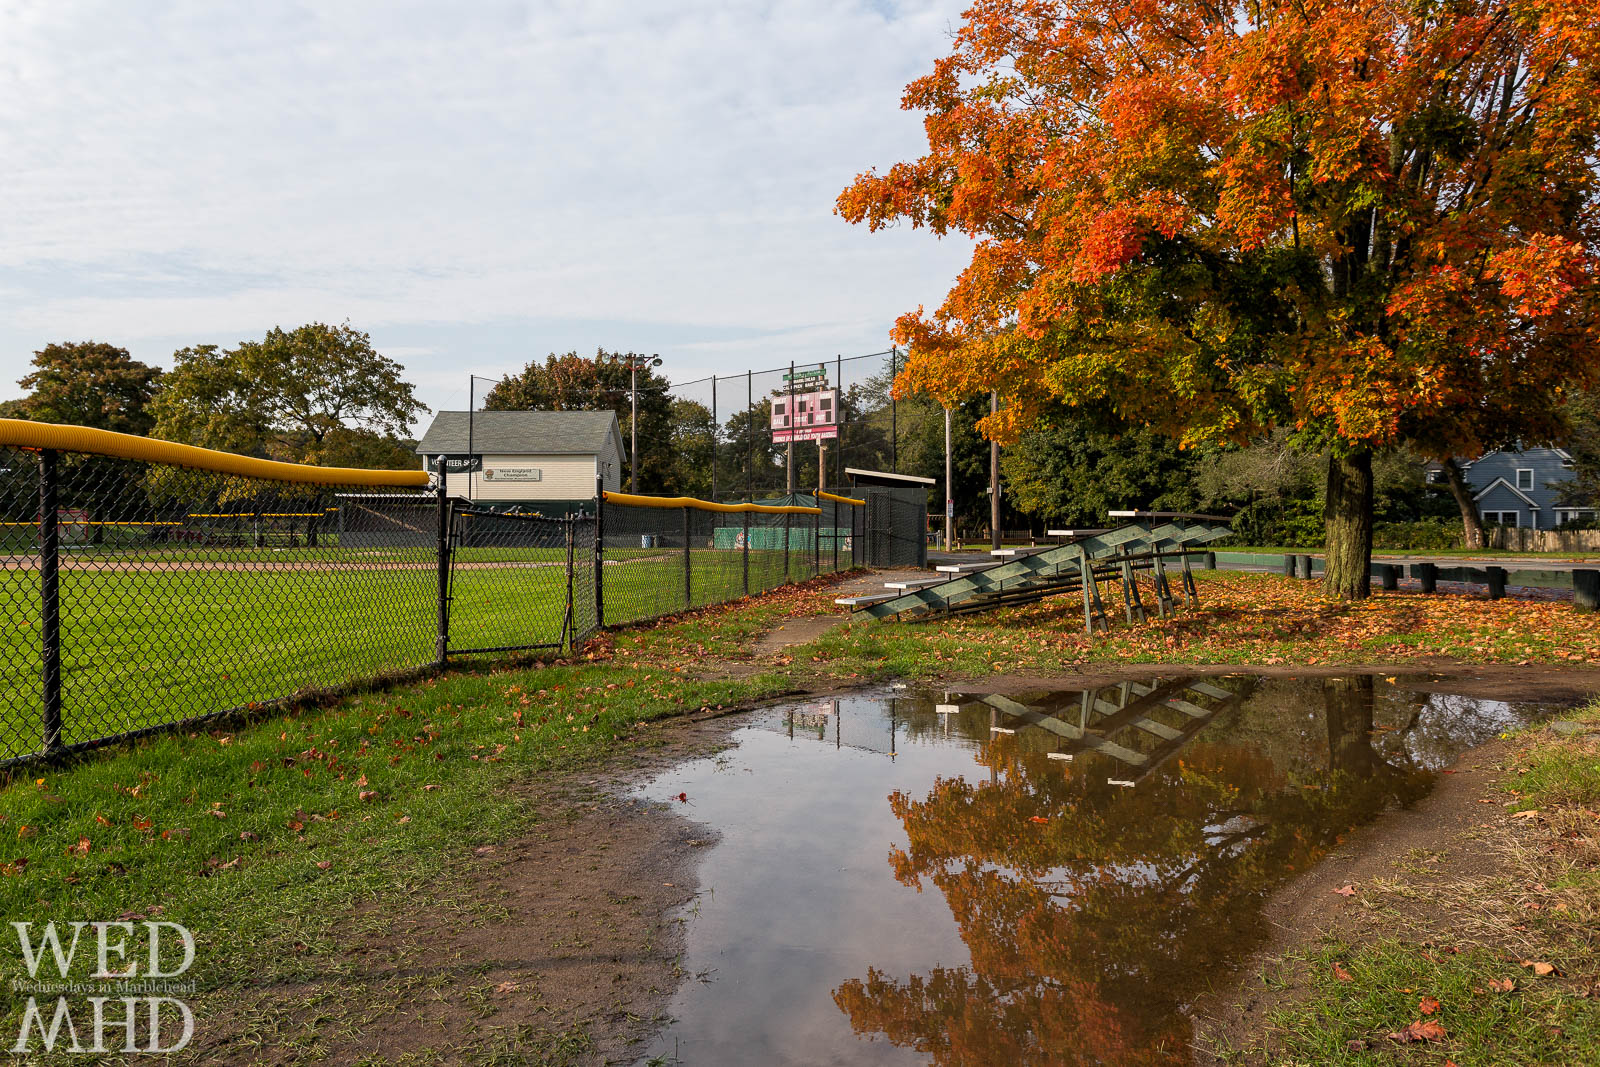 Gatchell Field and the Old Maple Tree